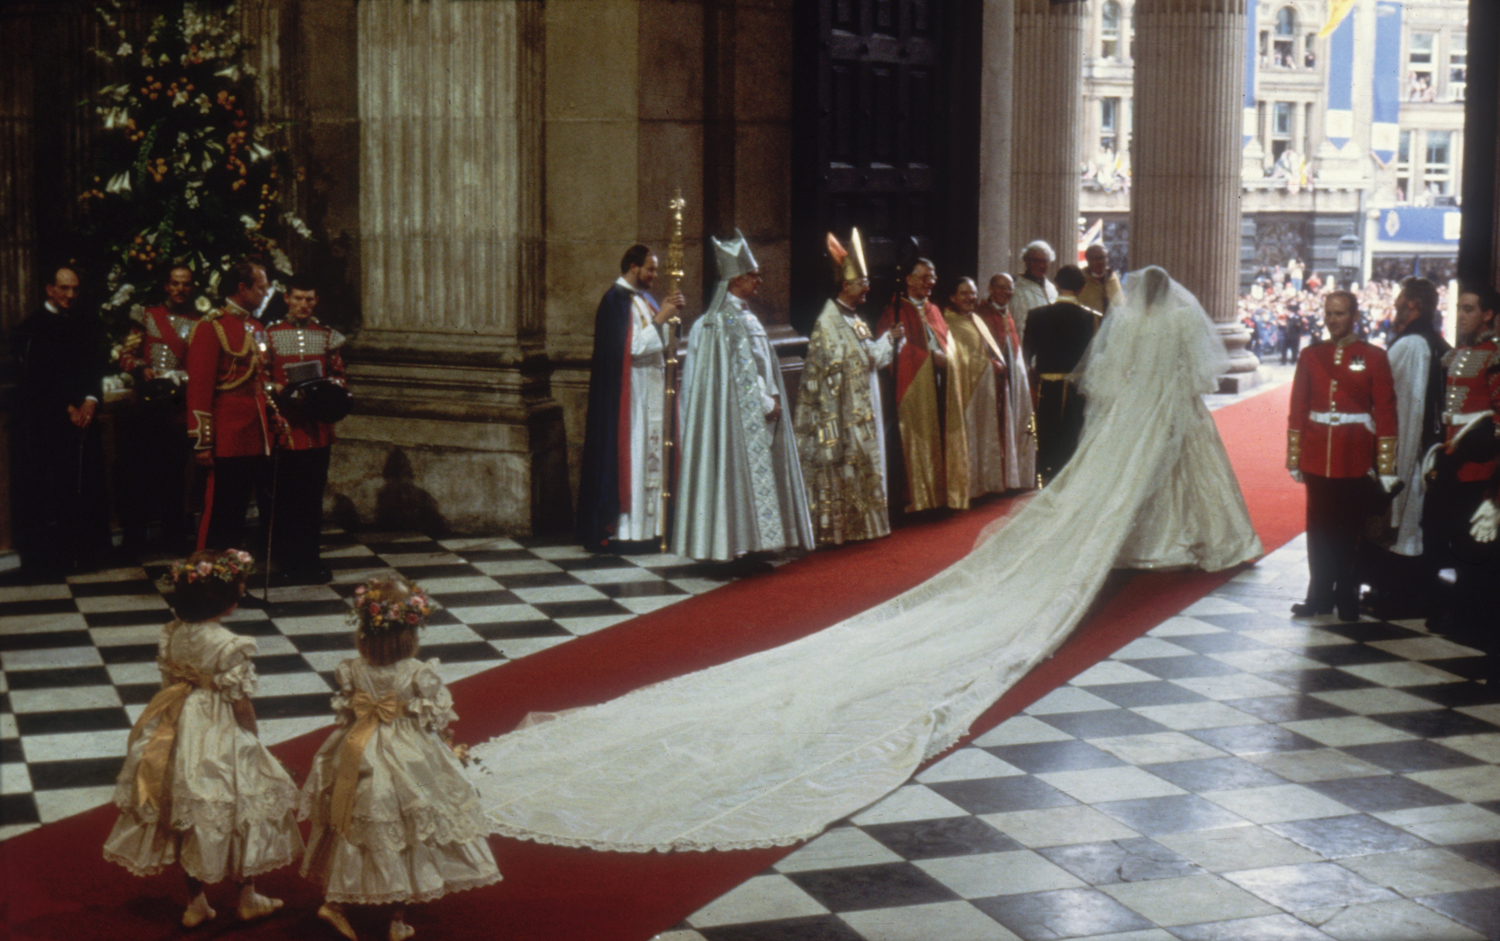 29th July 1981: Charles, Prince of Wales, with his wife, Princess Diana (1961 - 1997), at St Paul's Cathedral, London, during their marriage ceremony. (Photo by Hulton Archive/Getty Images)